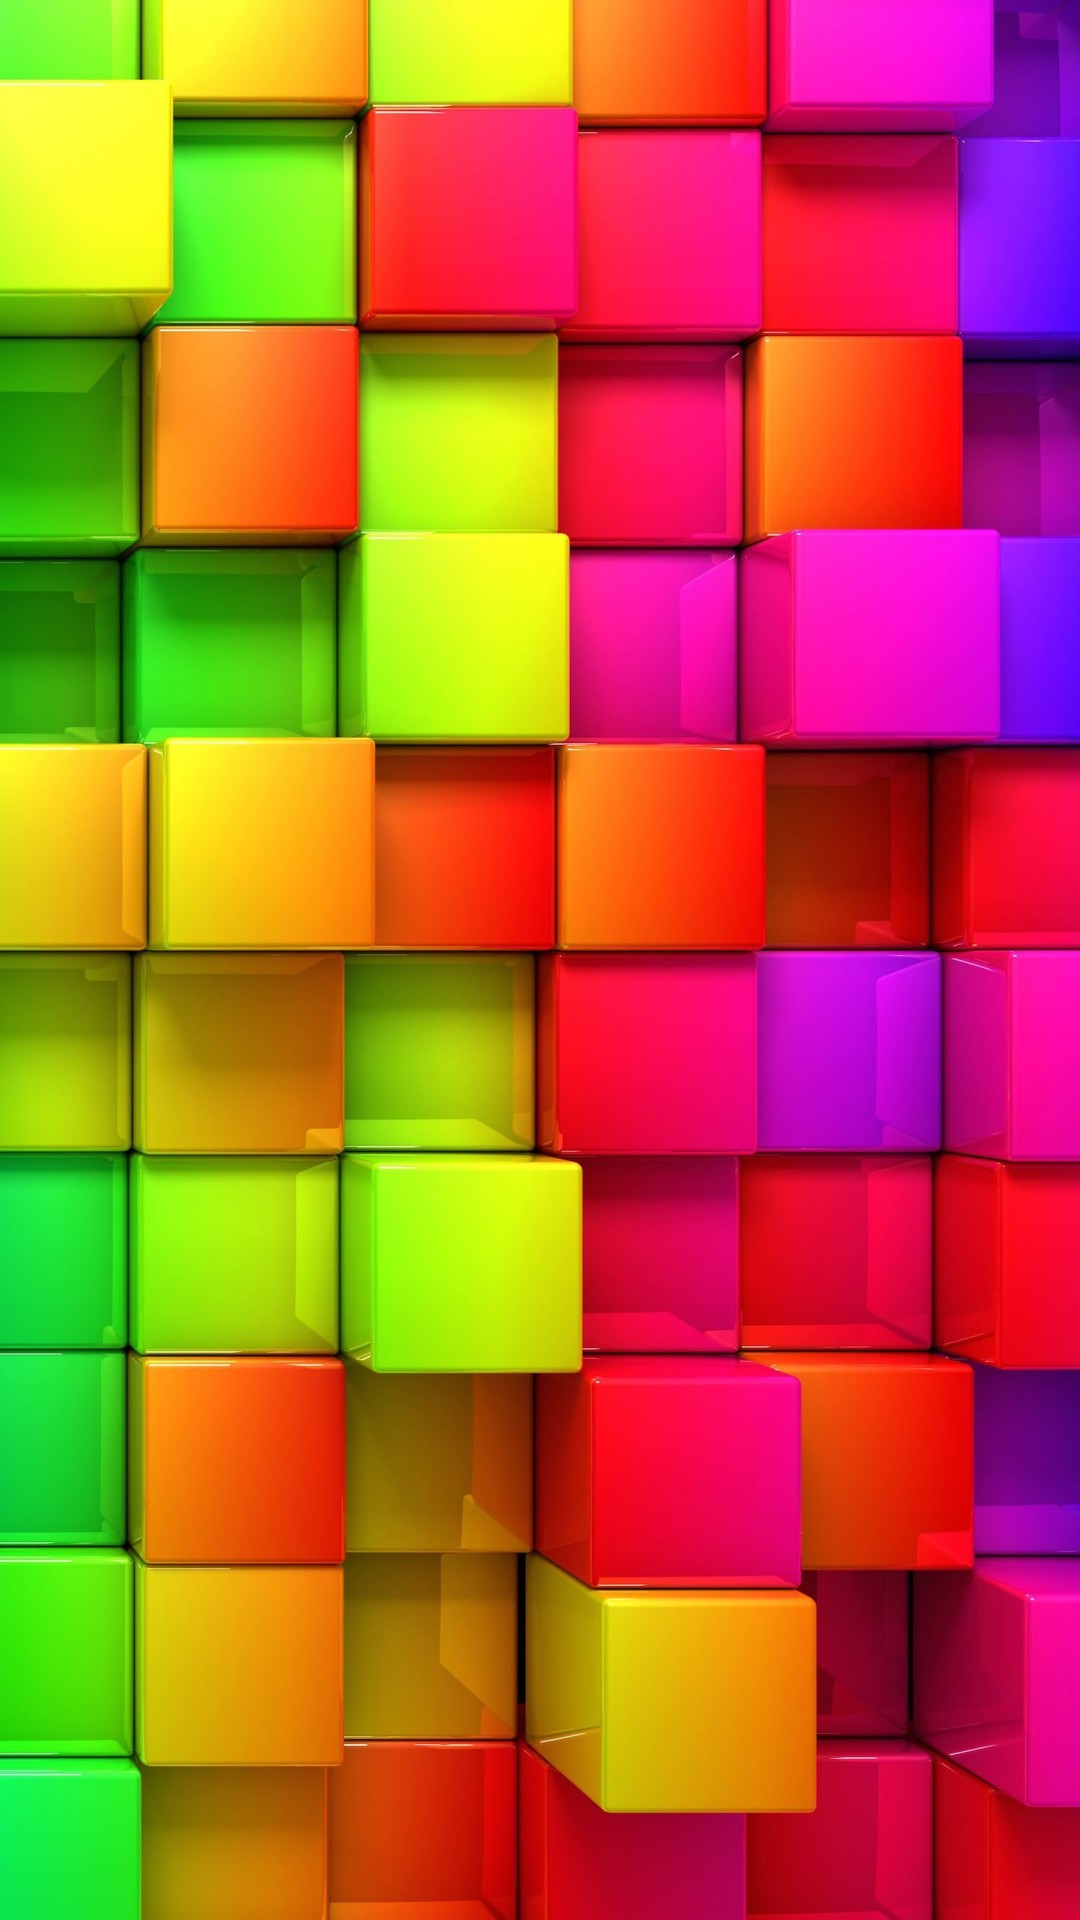 Cubic Rainbow Wallpaper for LG G2